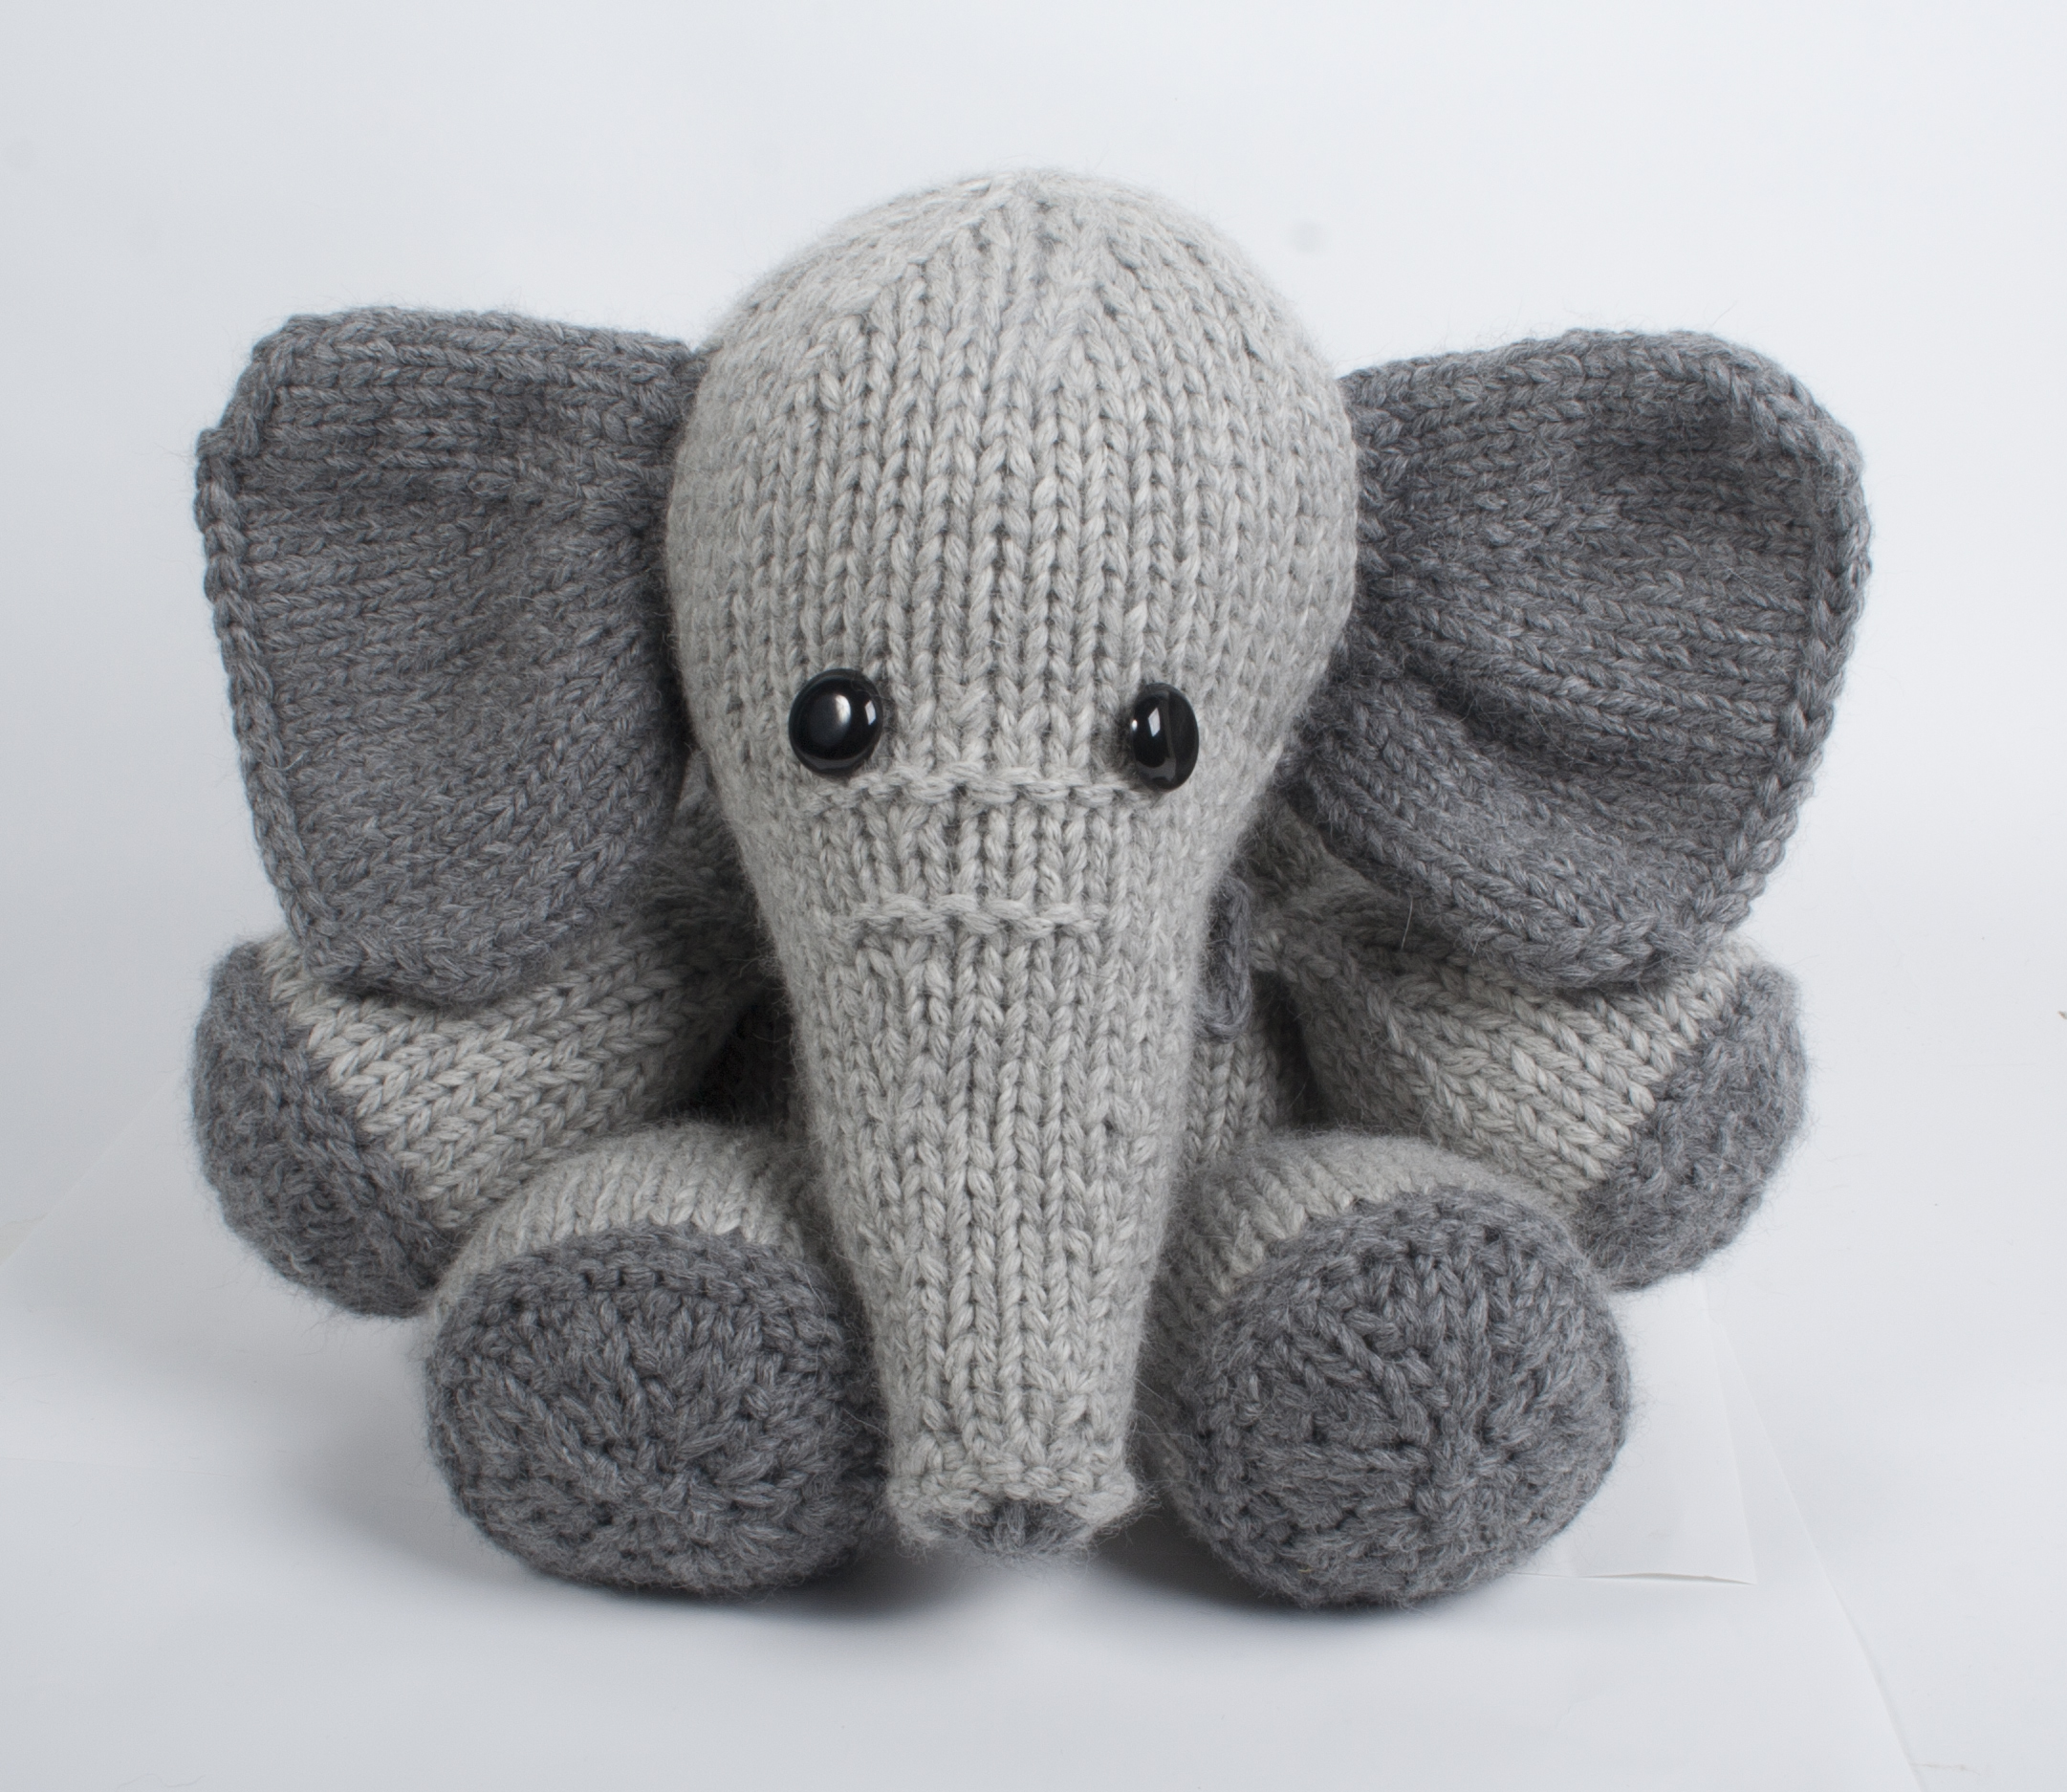 Easy Elephant Knitting Pattern : BagSmith Blissa Elephant Kit Giveaway knitcircus